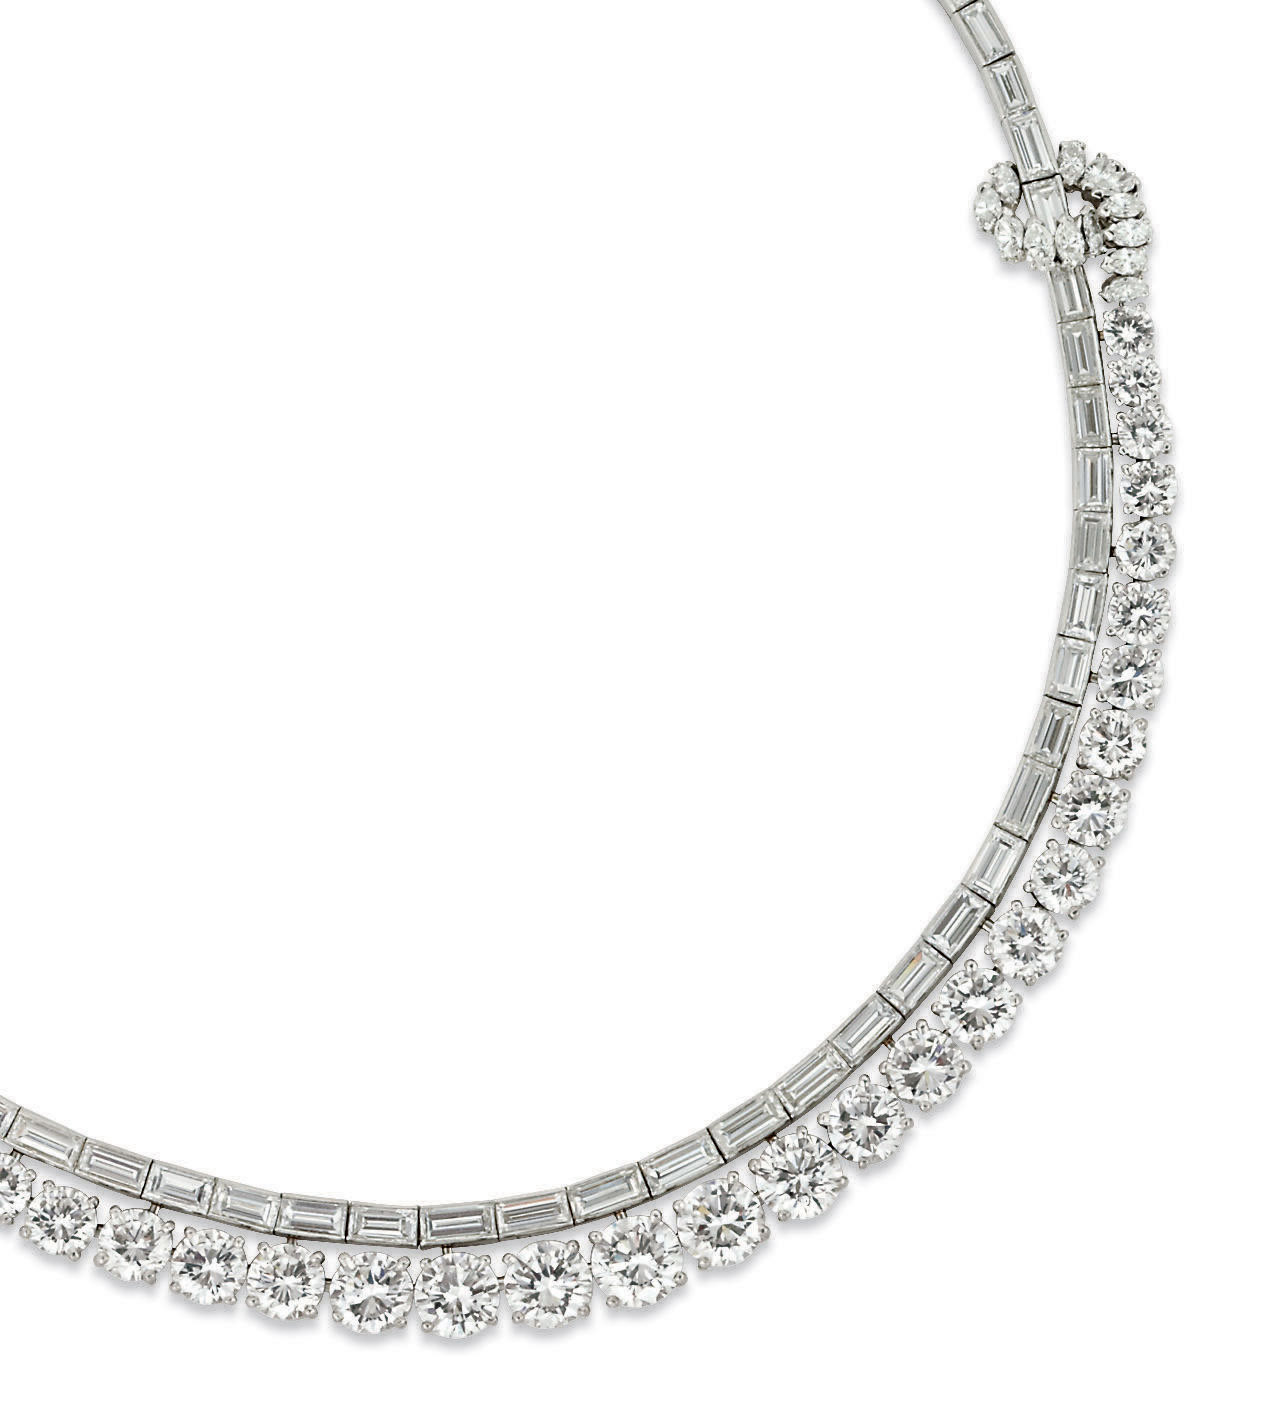 COLLIER DIAMANTS, PAR FONTANA